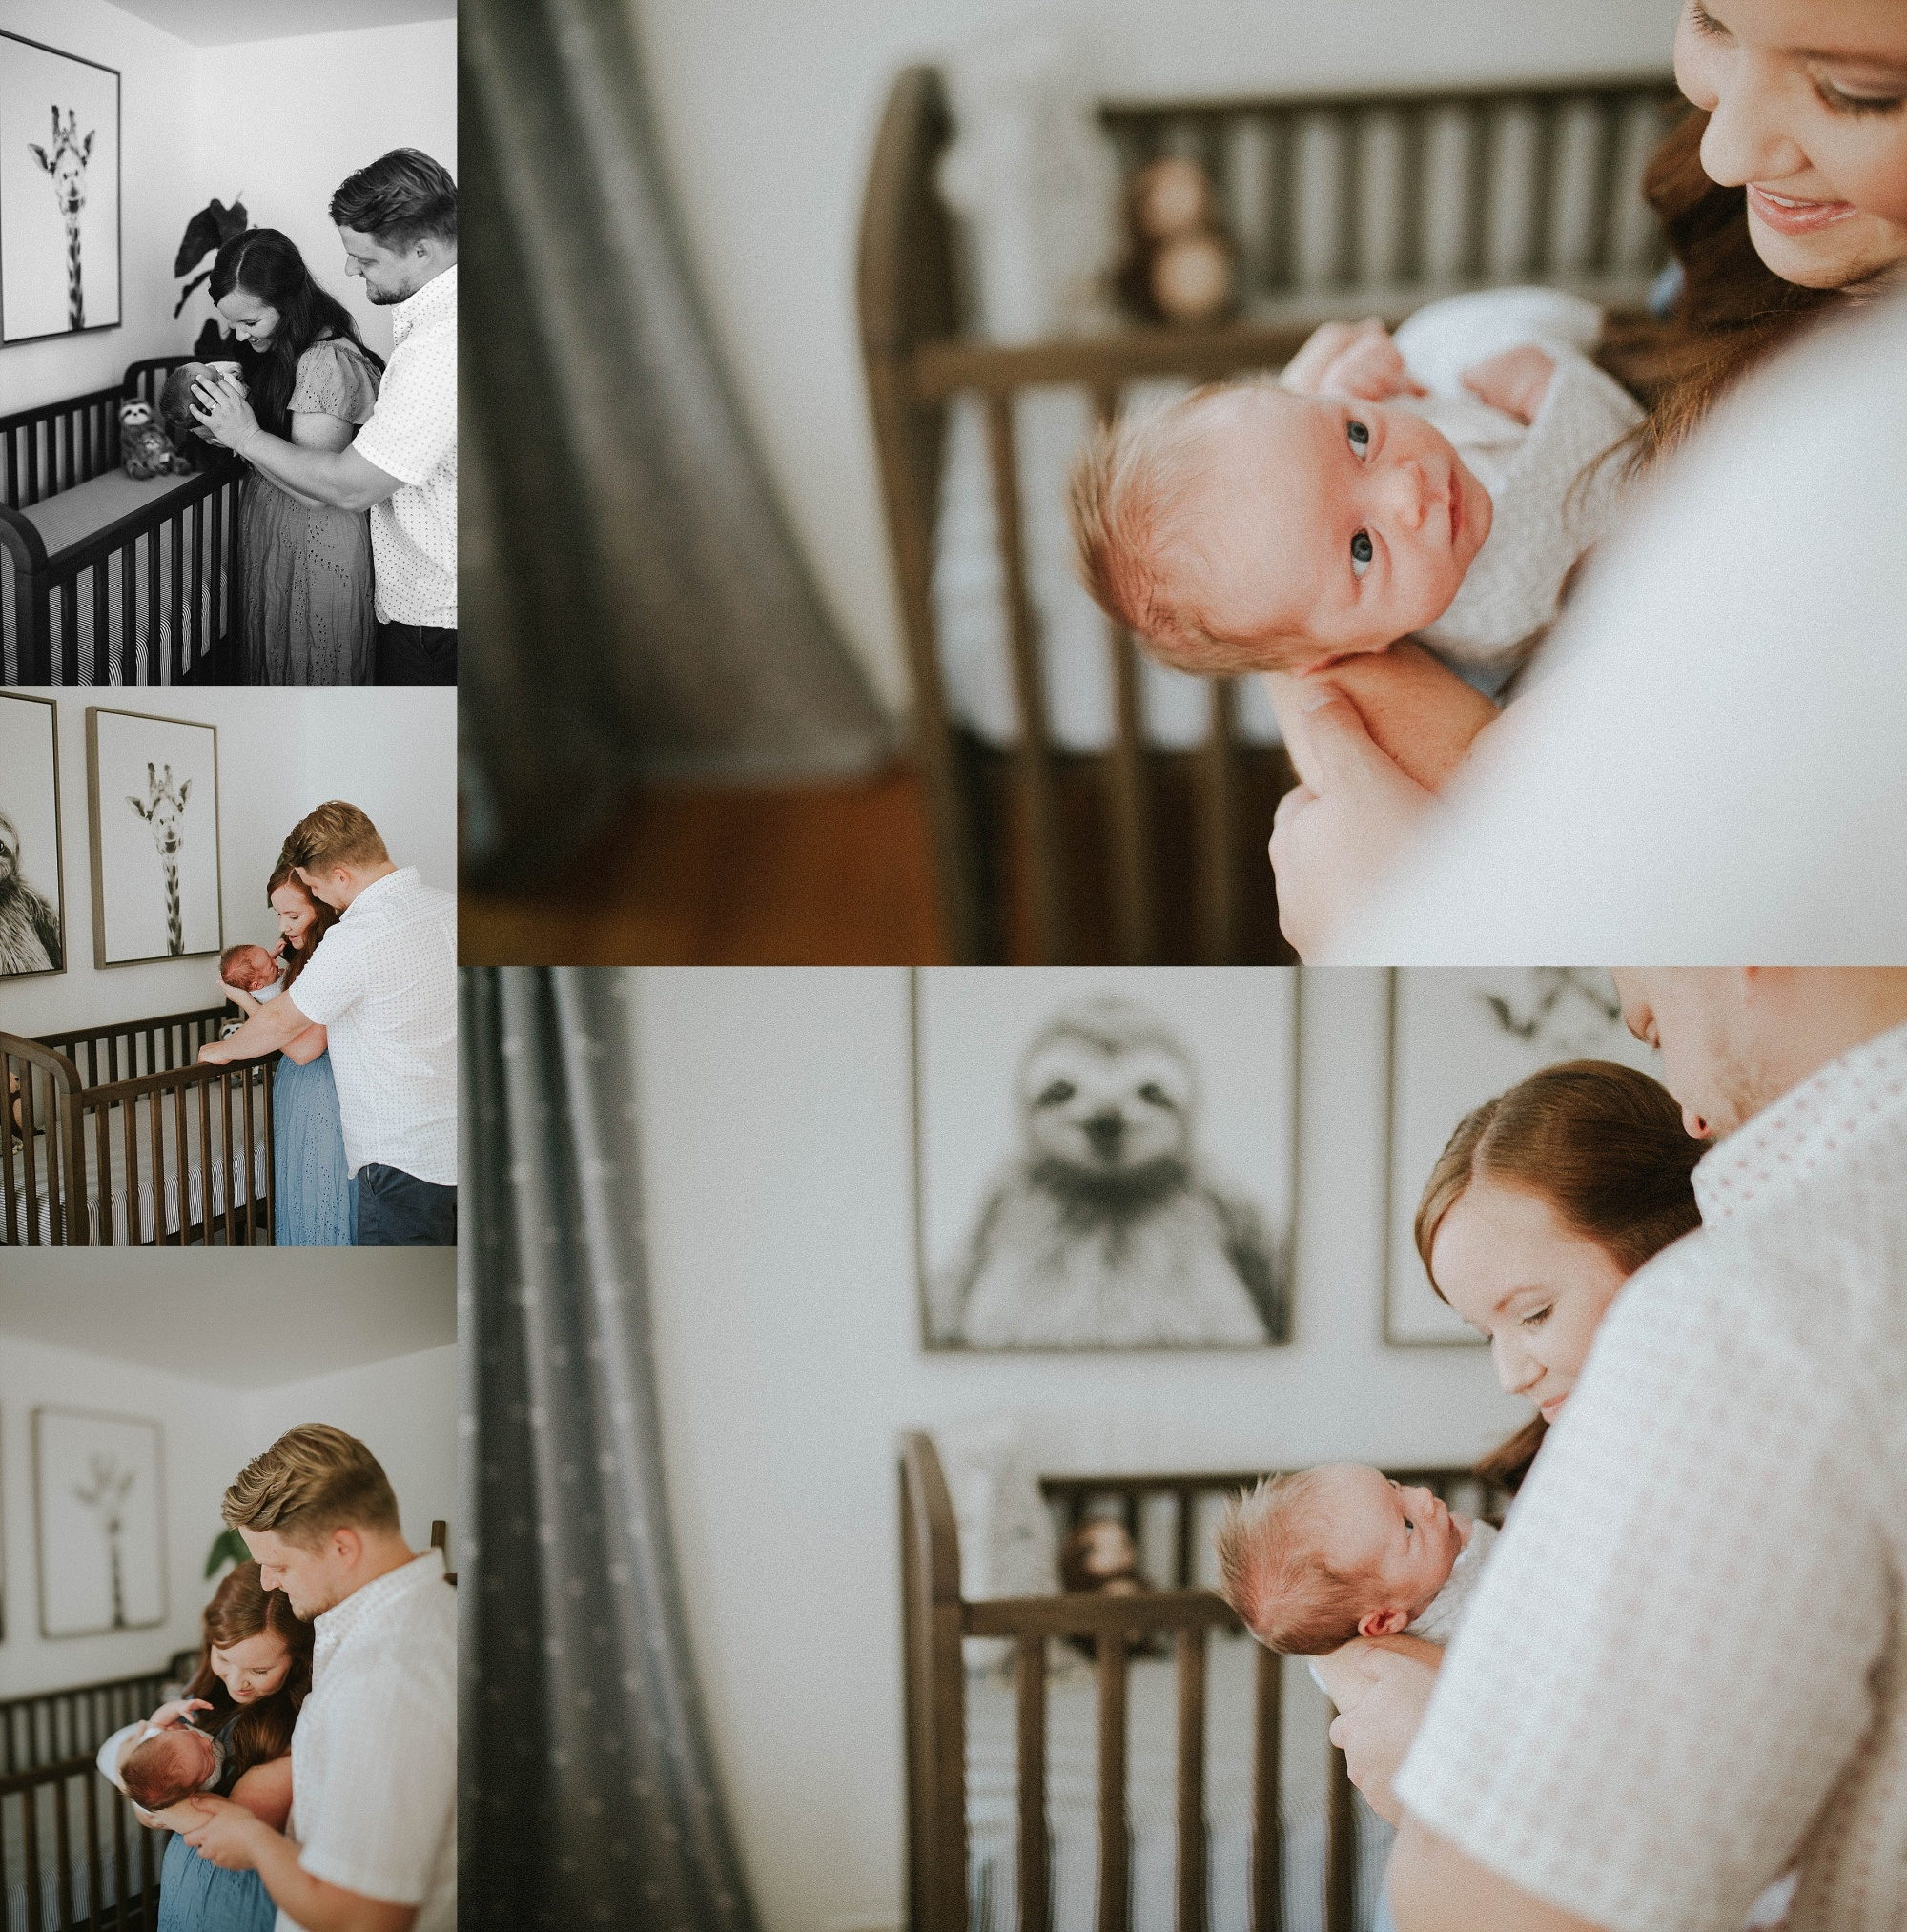 Adri de la cruz chicago and west suburbs best newborn photographer (6)